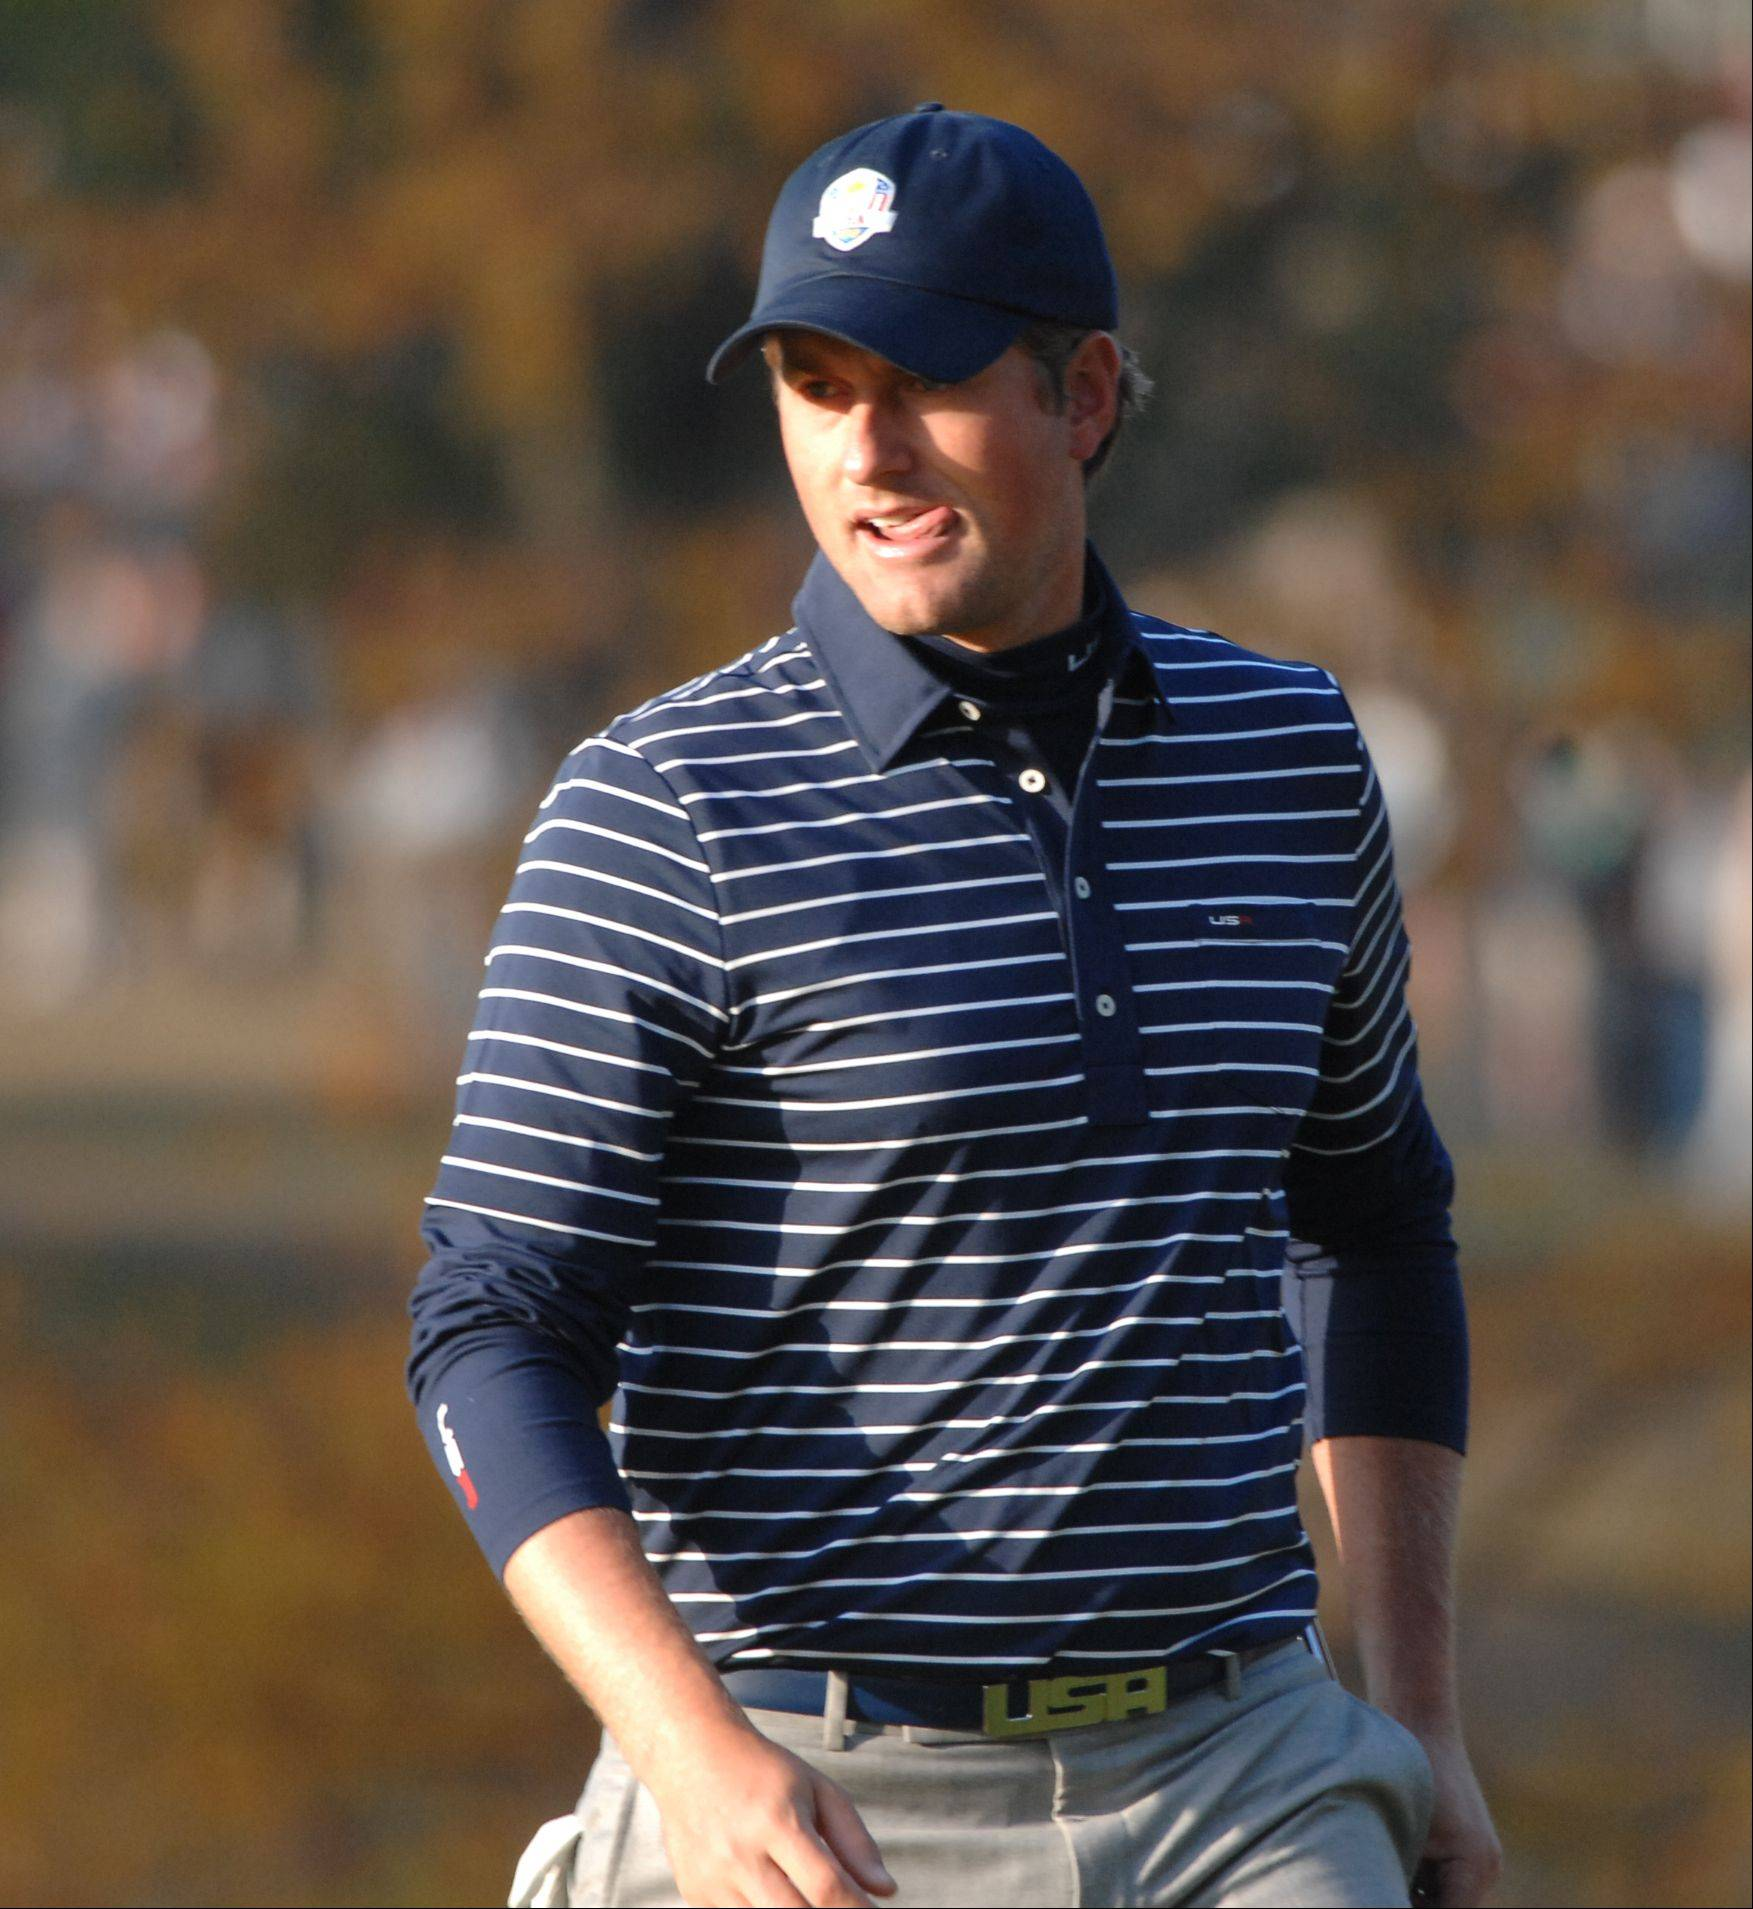 Webb Simpson on the first hole Saturday morning during day 2 of the 2012 Ryder Cup at Medinah Country Club.